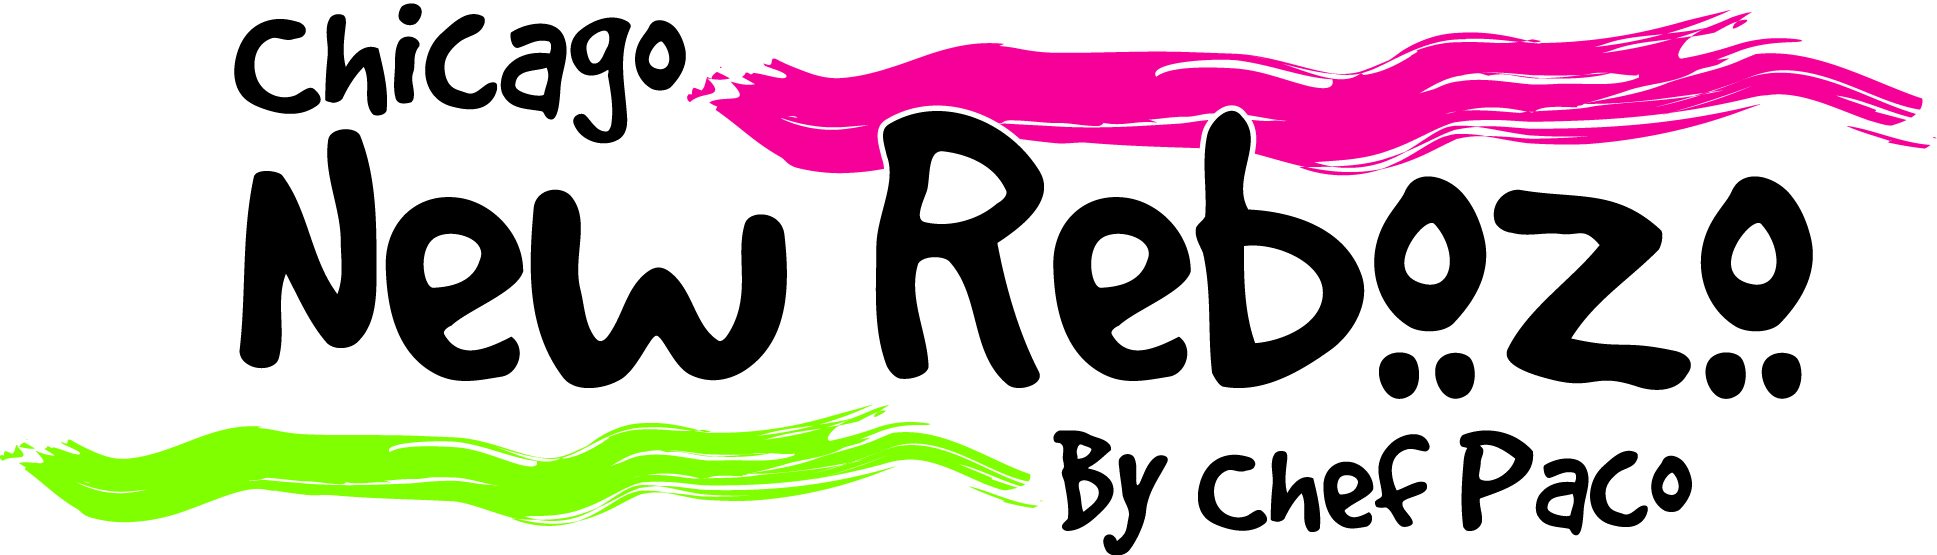 Logo New Rebozo_Chicago02.jpg